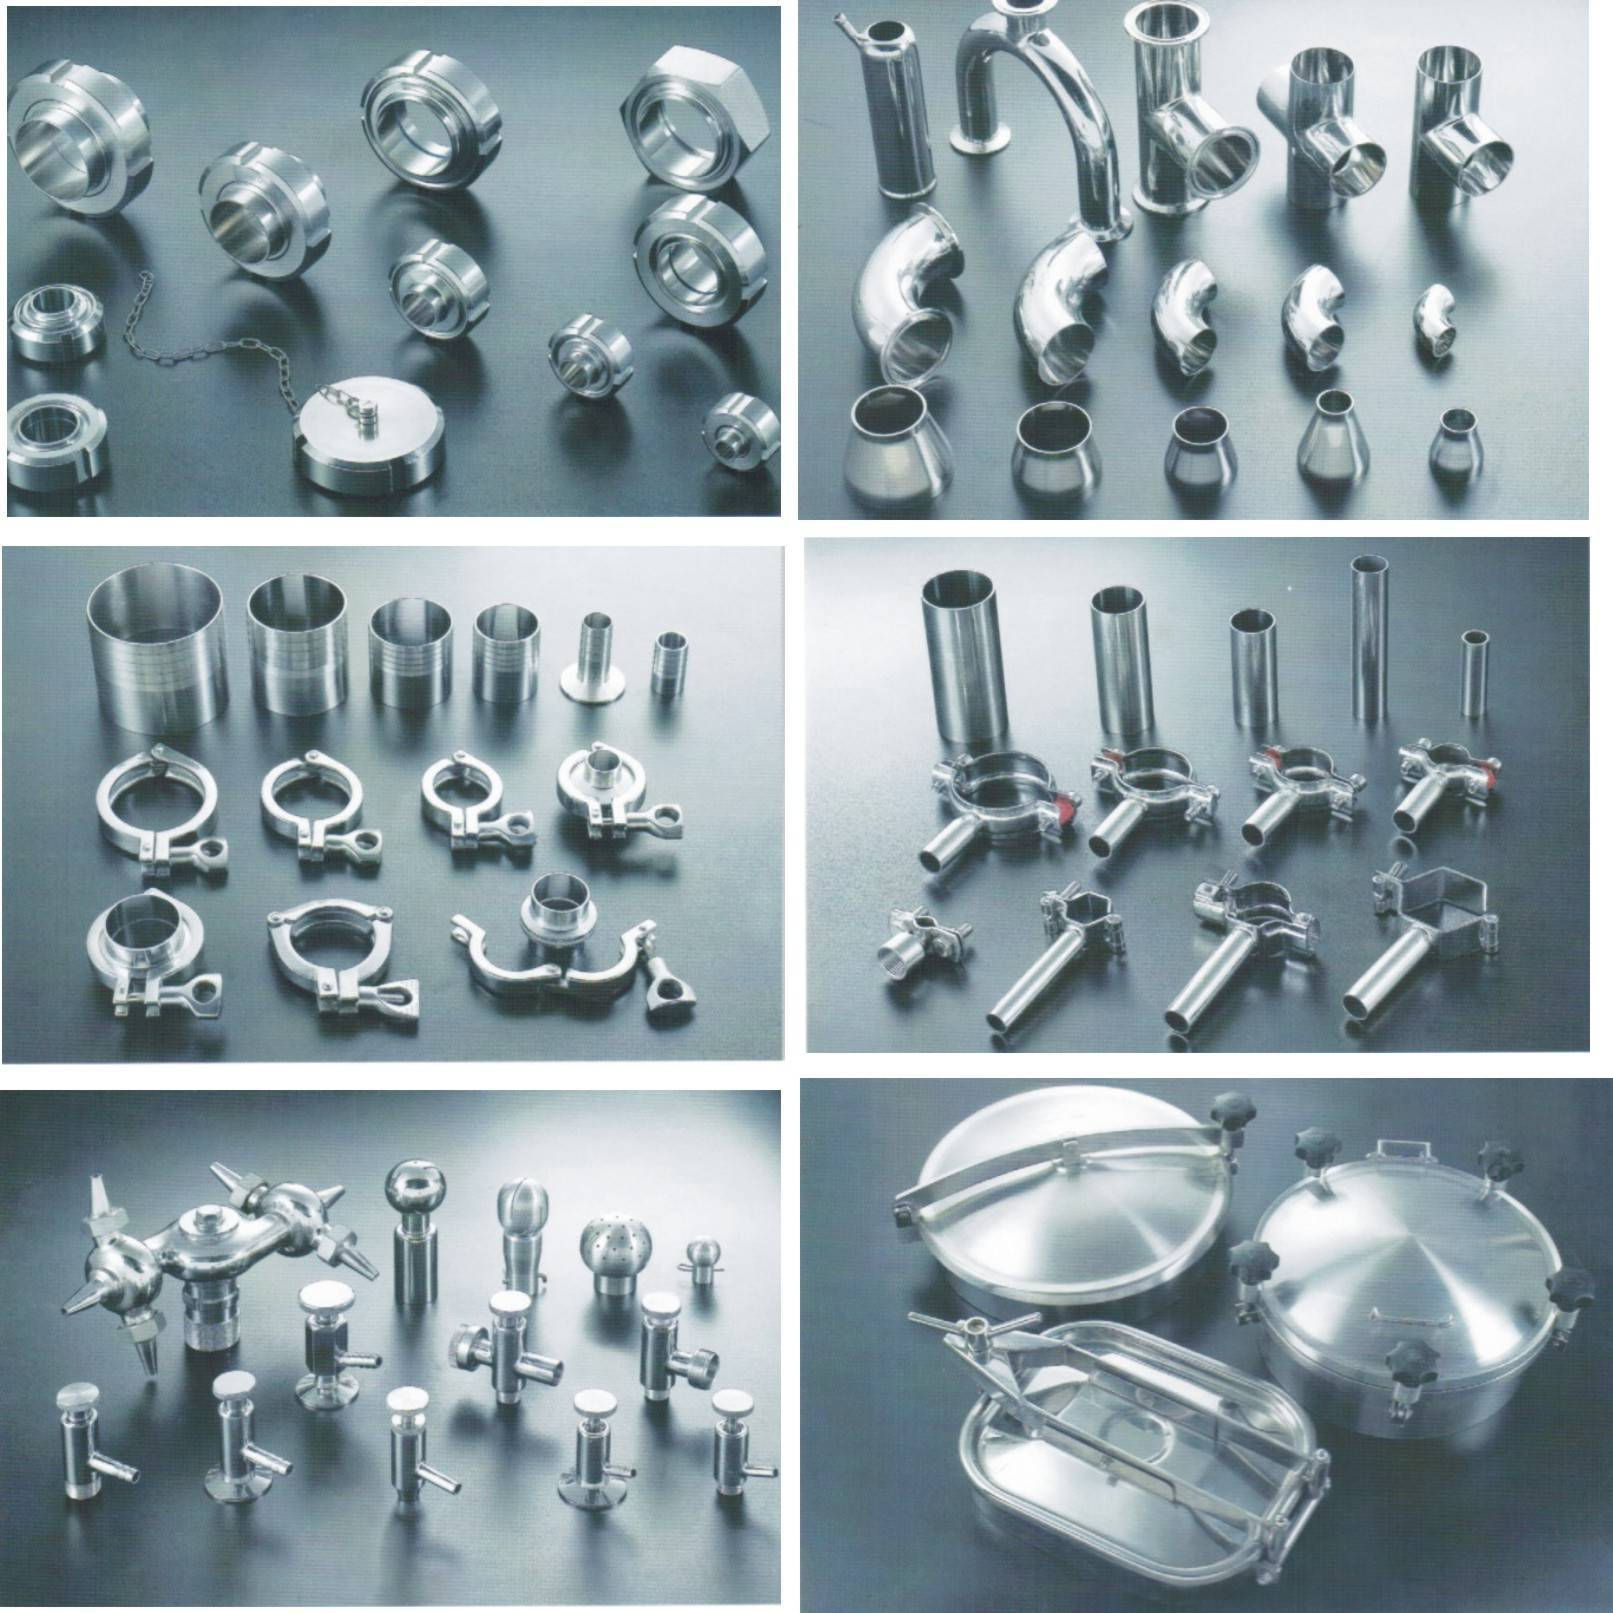 Sanitary stainless steel pipe fittings union elbow clamp